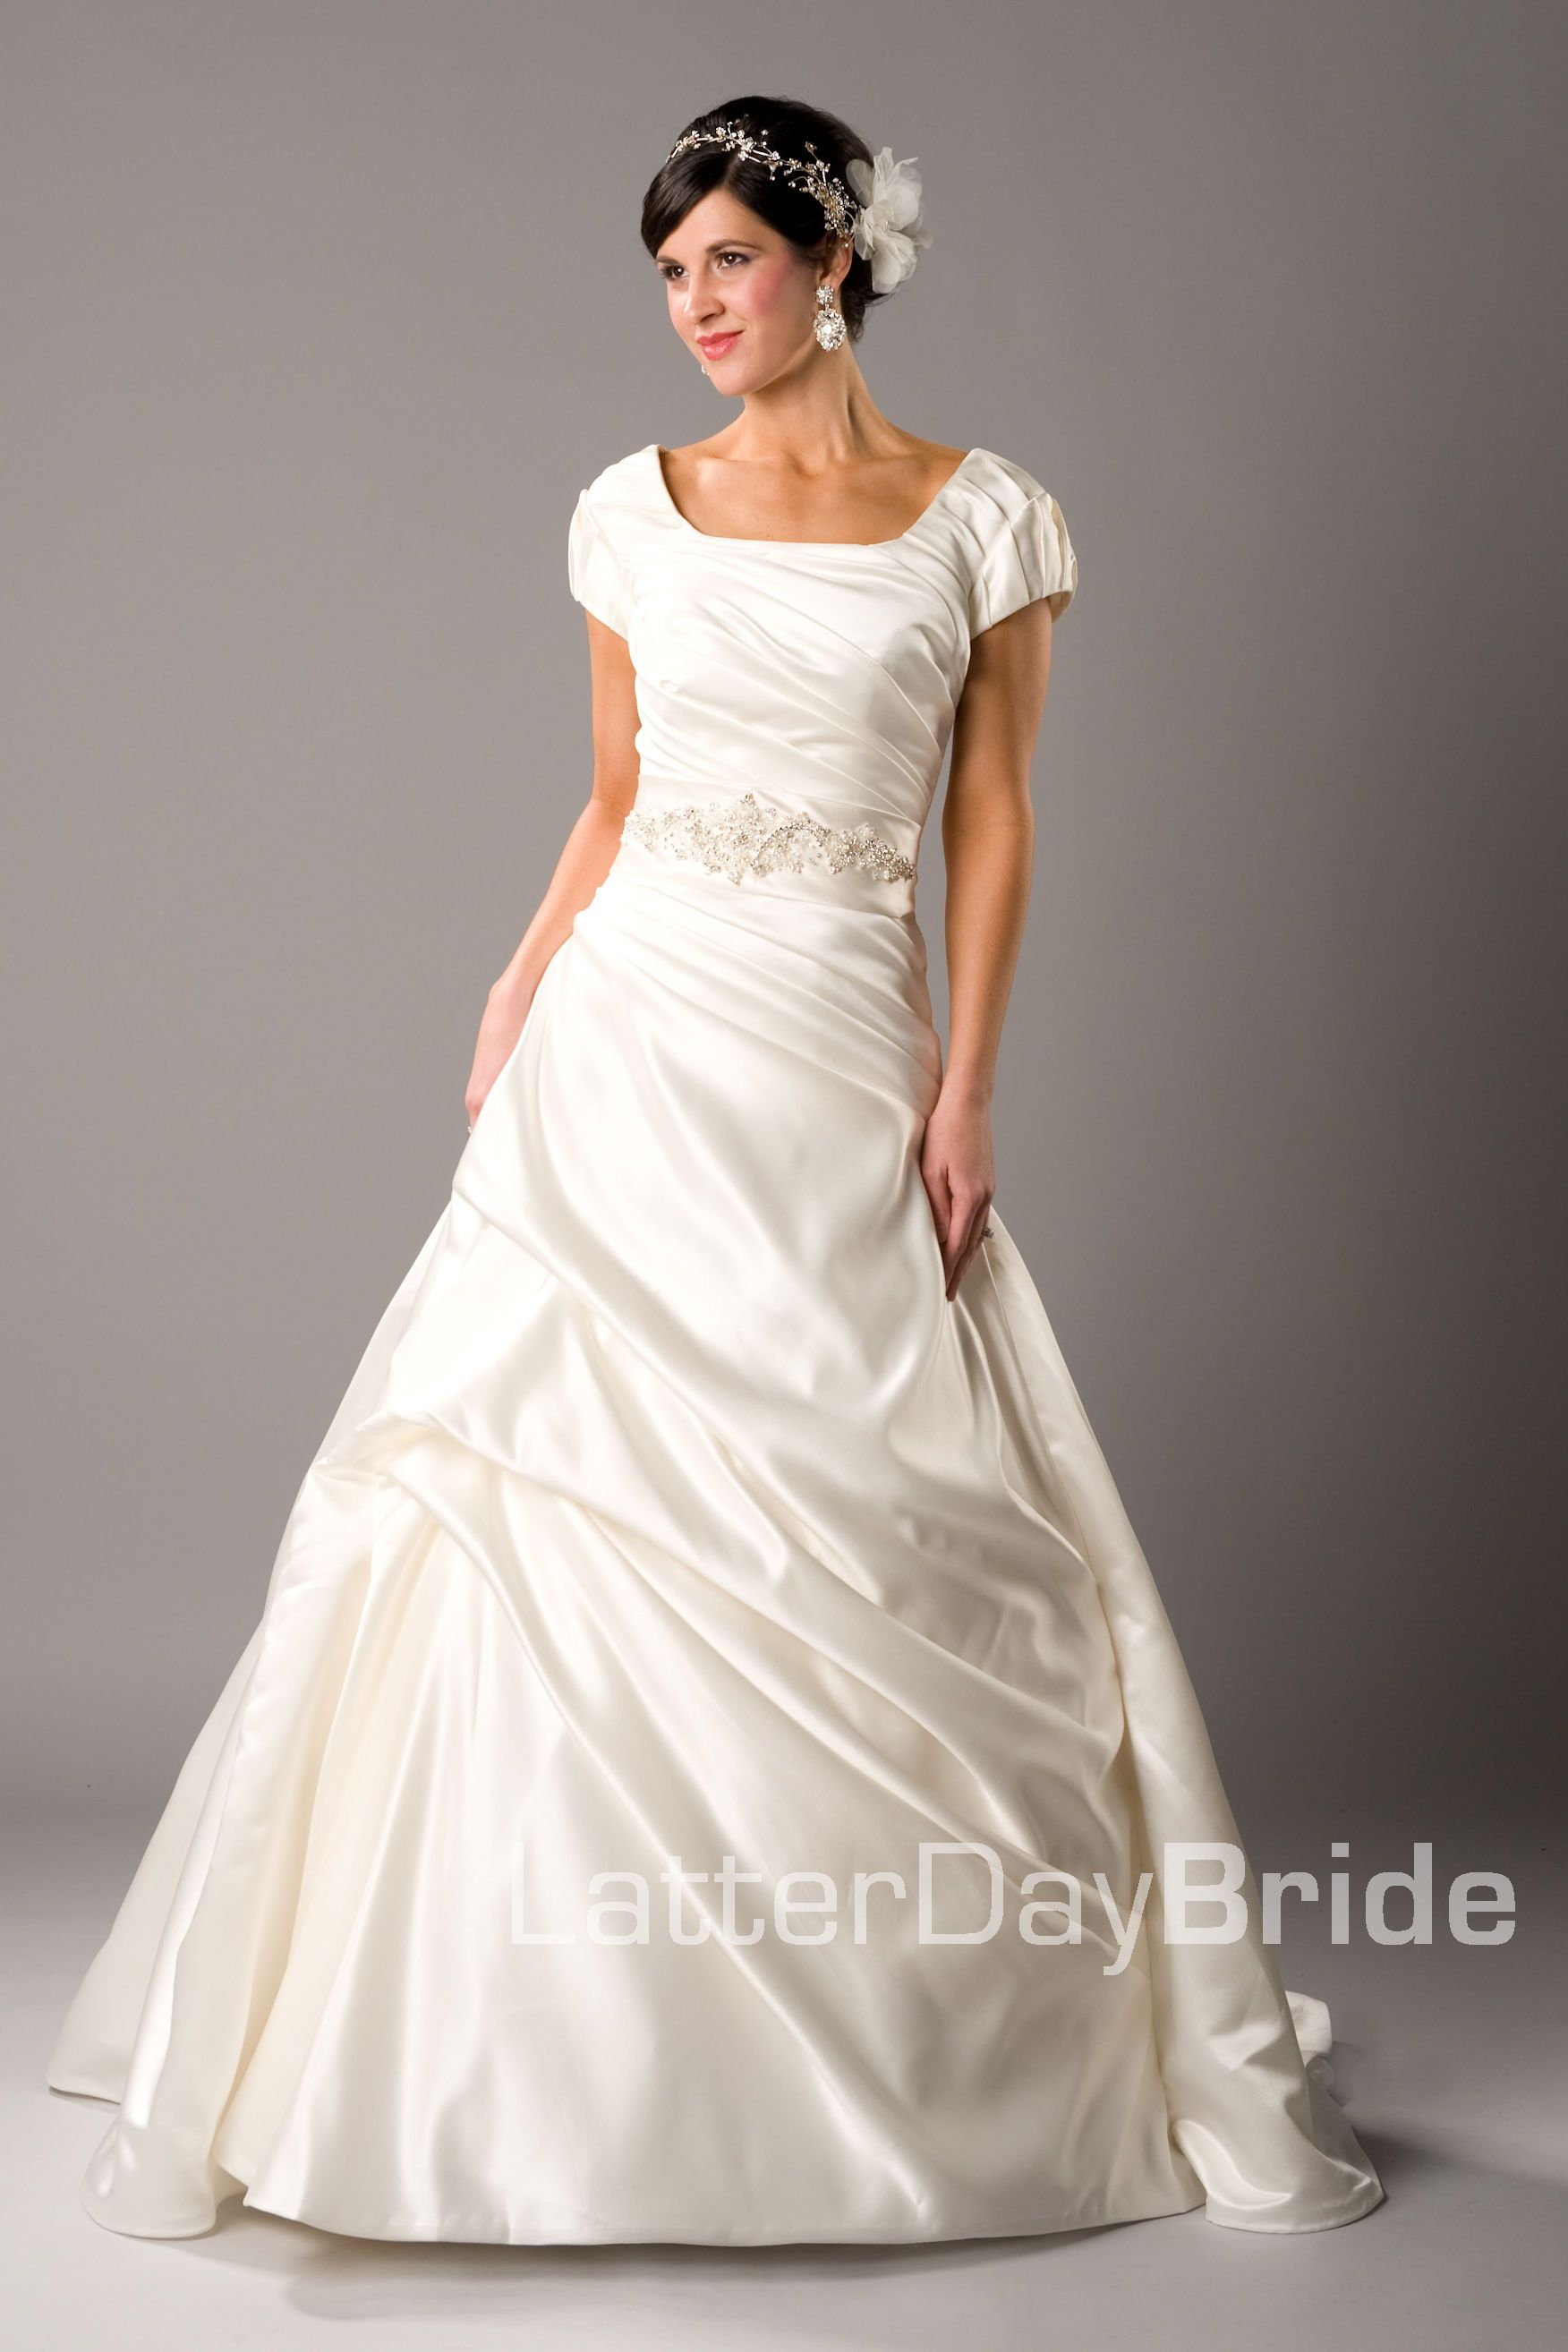 Latter Day Bride This Website Has Lots Of Dresses That